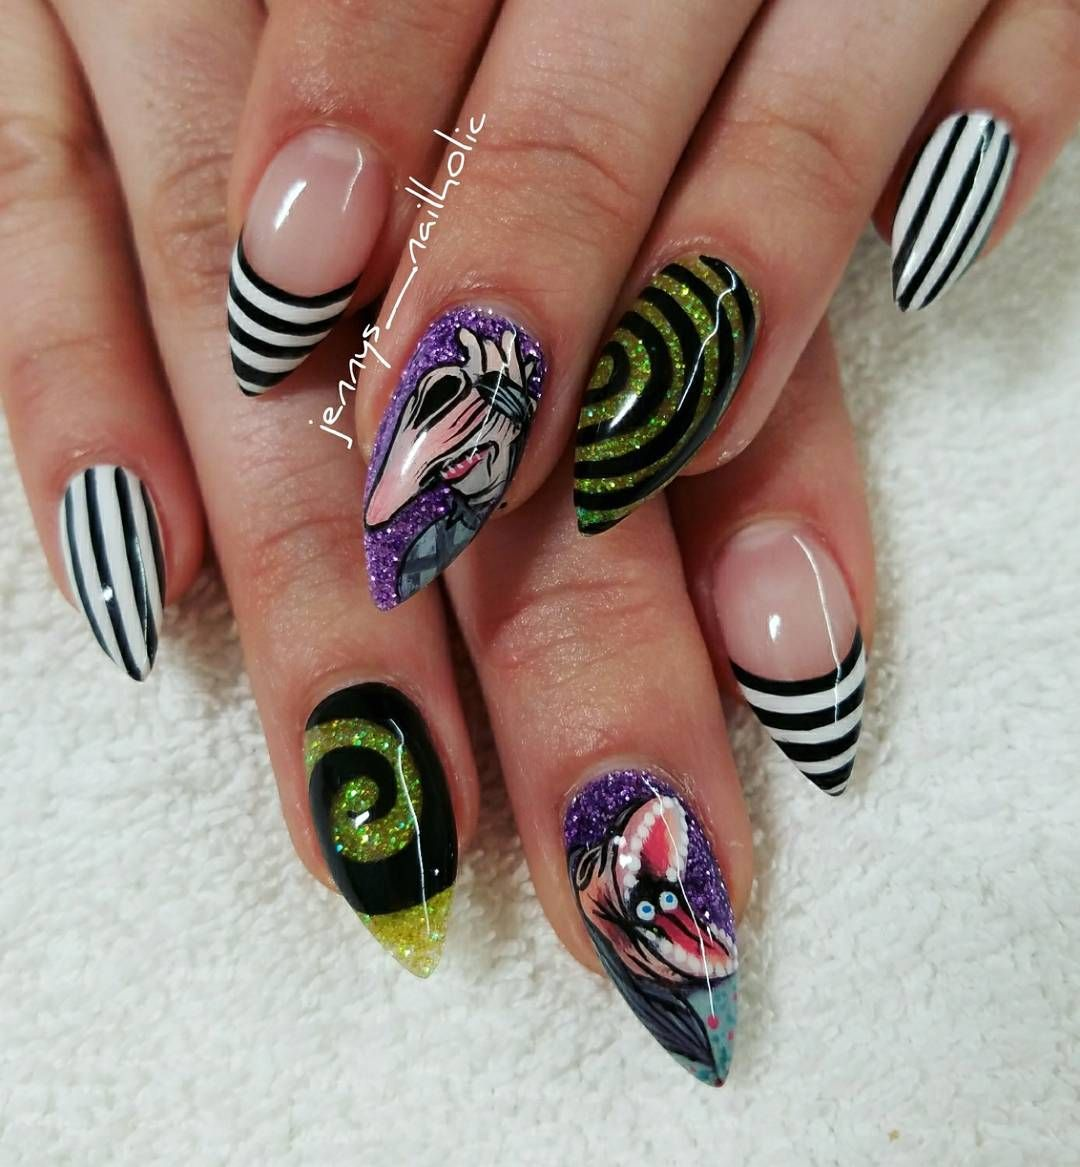 13 Ghostly Beetlejuice Nail Art Designs - Nails Magazine | //claws ...